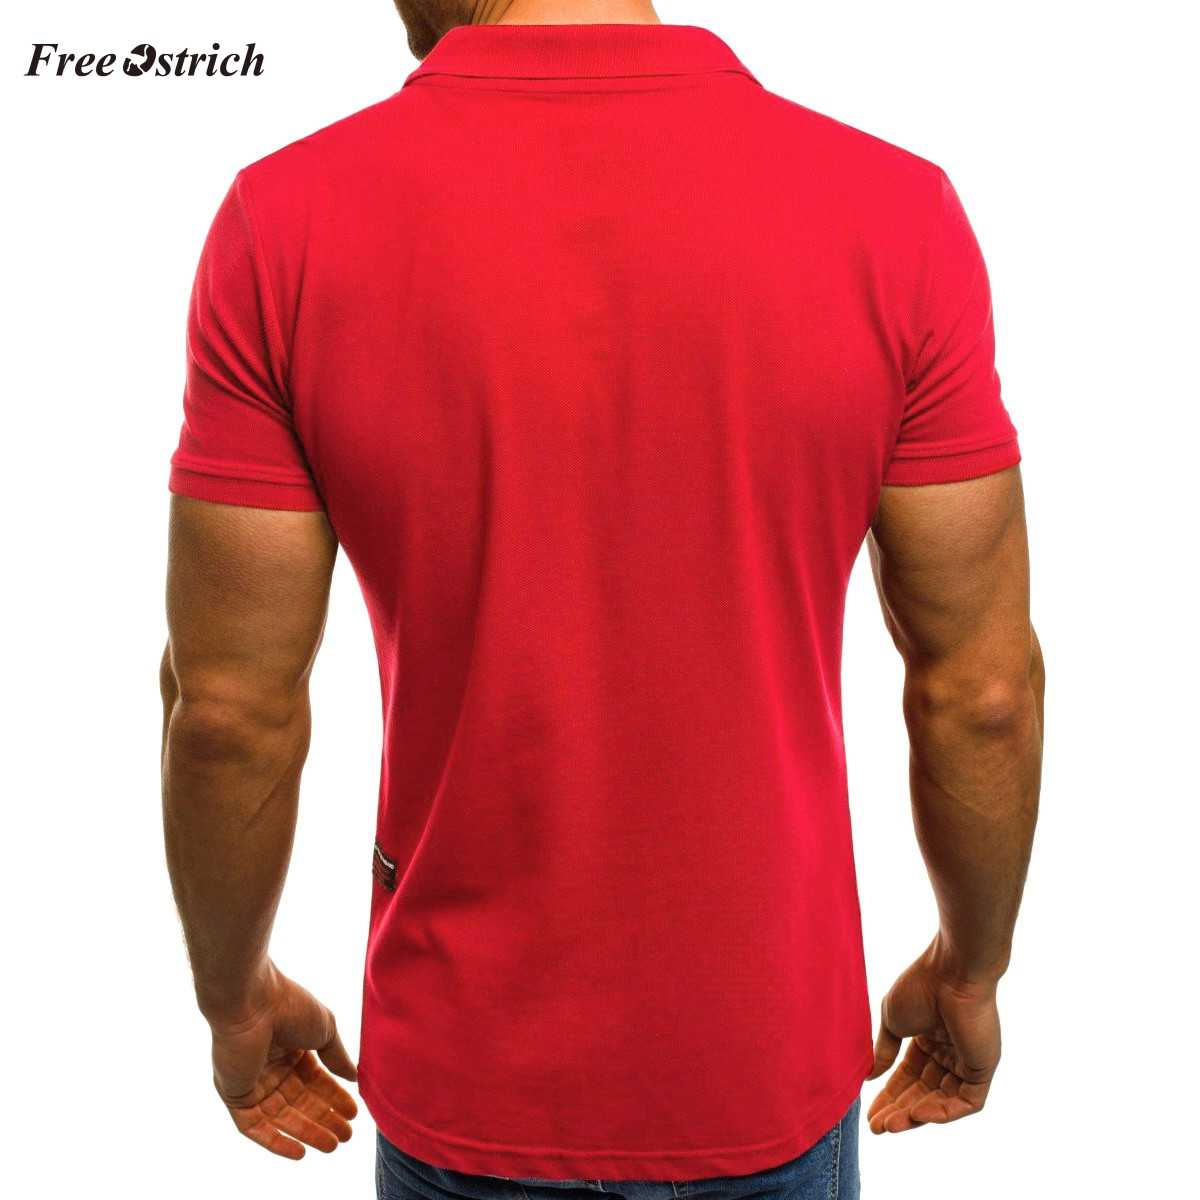 Free Ostrich Men's Polp Shirts With Pocket Zipper Short Sleeve Blouses For Men Breathable Materials Turn-down Collar Shirts